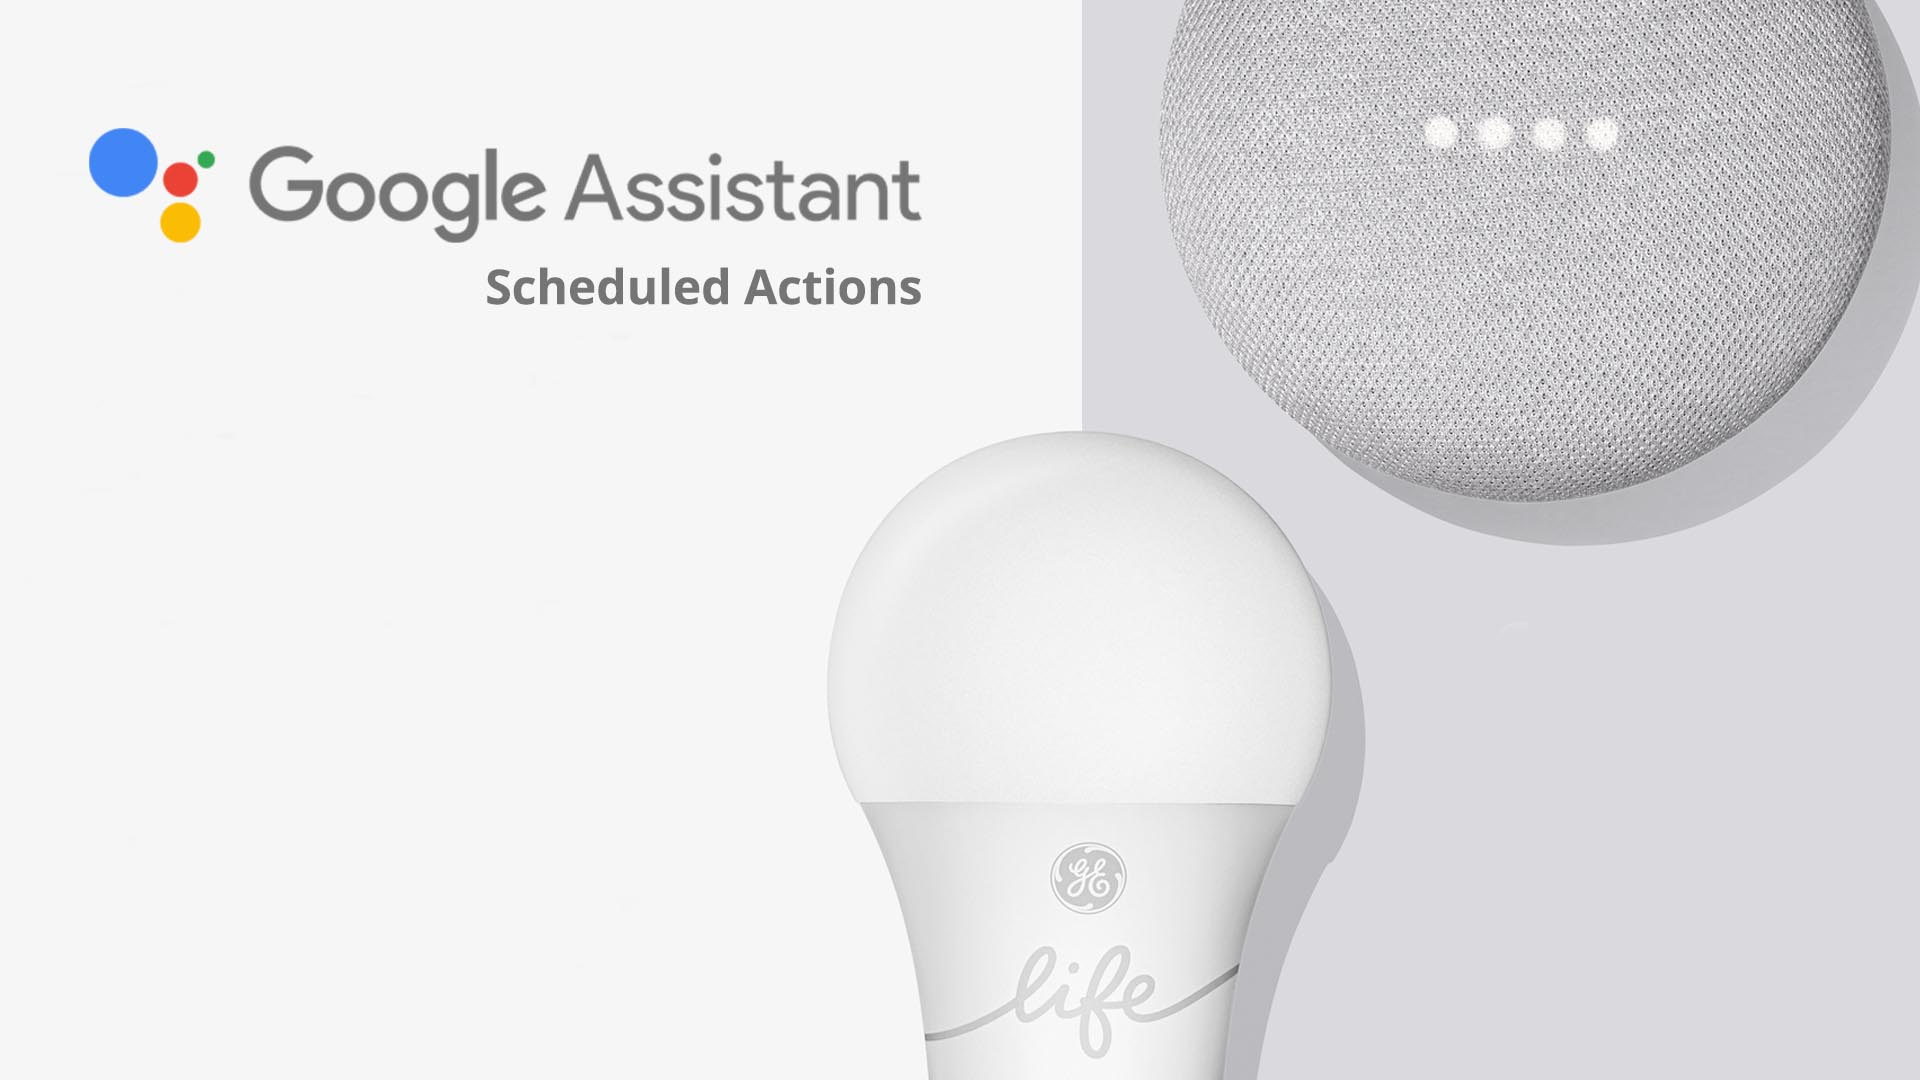 You can now schedule your lights to turn on and off with Google Assistant